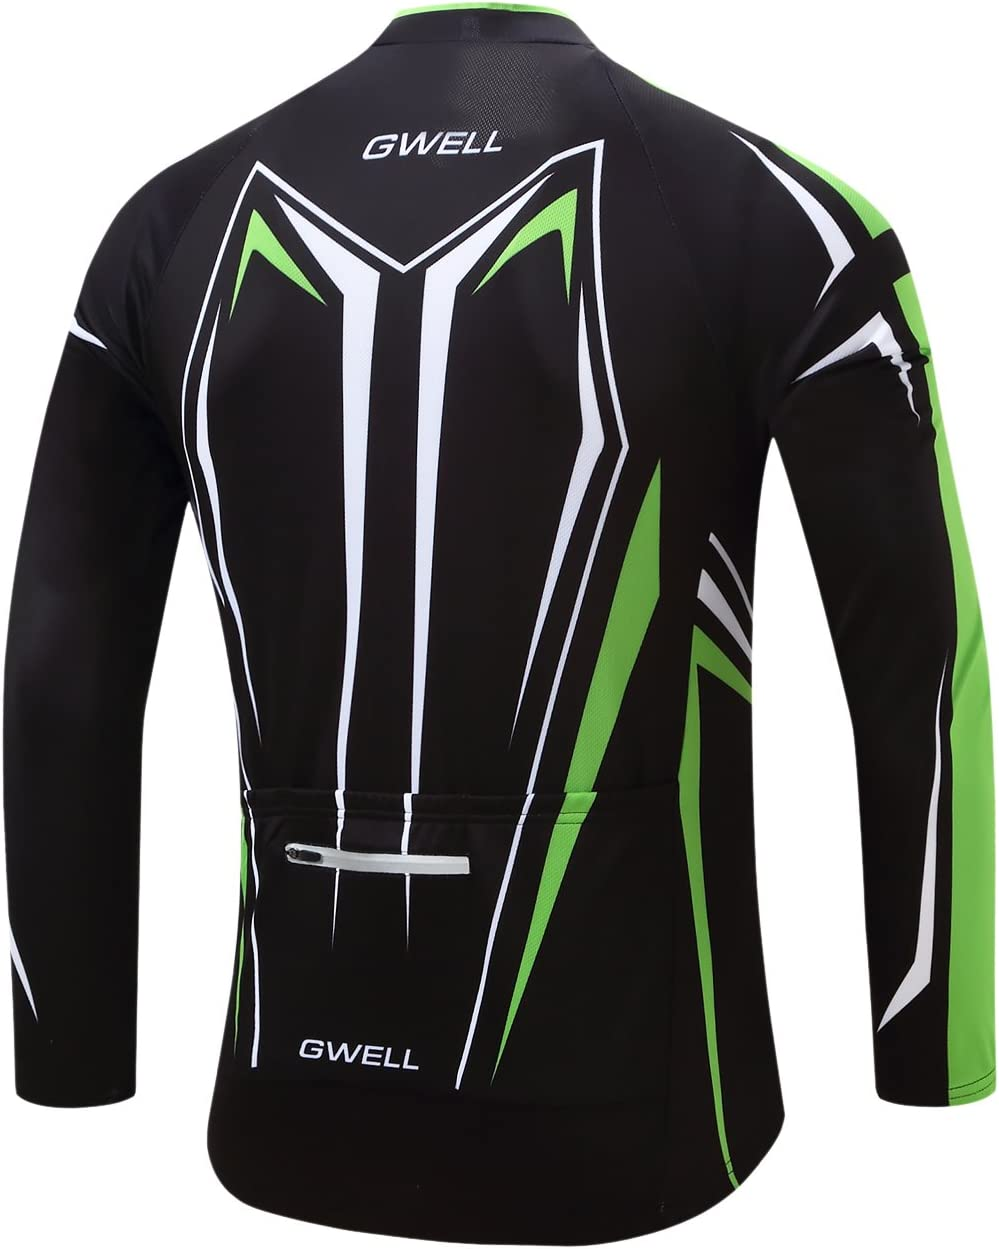 Includes Cycling Shorts With Seat Padding GWELL Mens Short Sleeve Long Sleeve Cycling Jersey Set